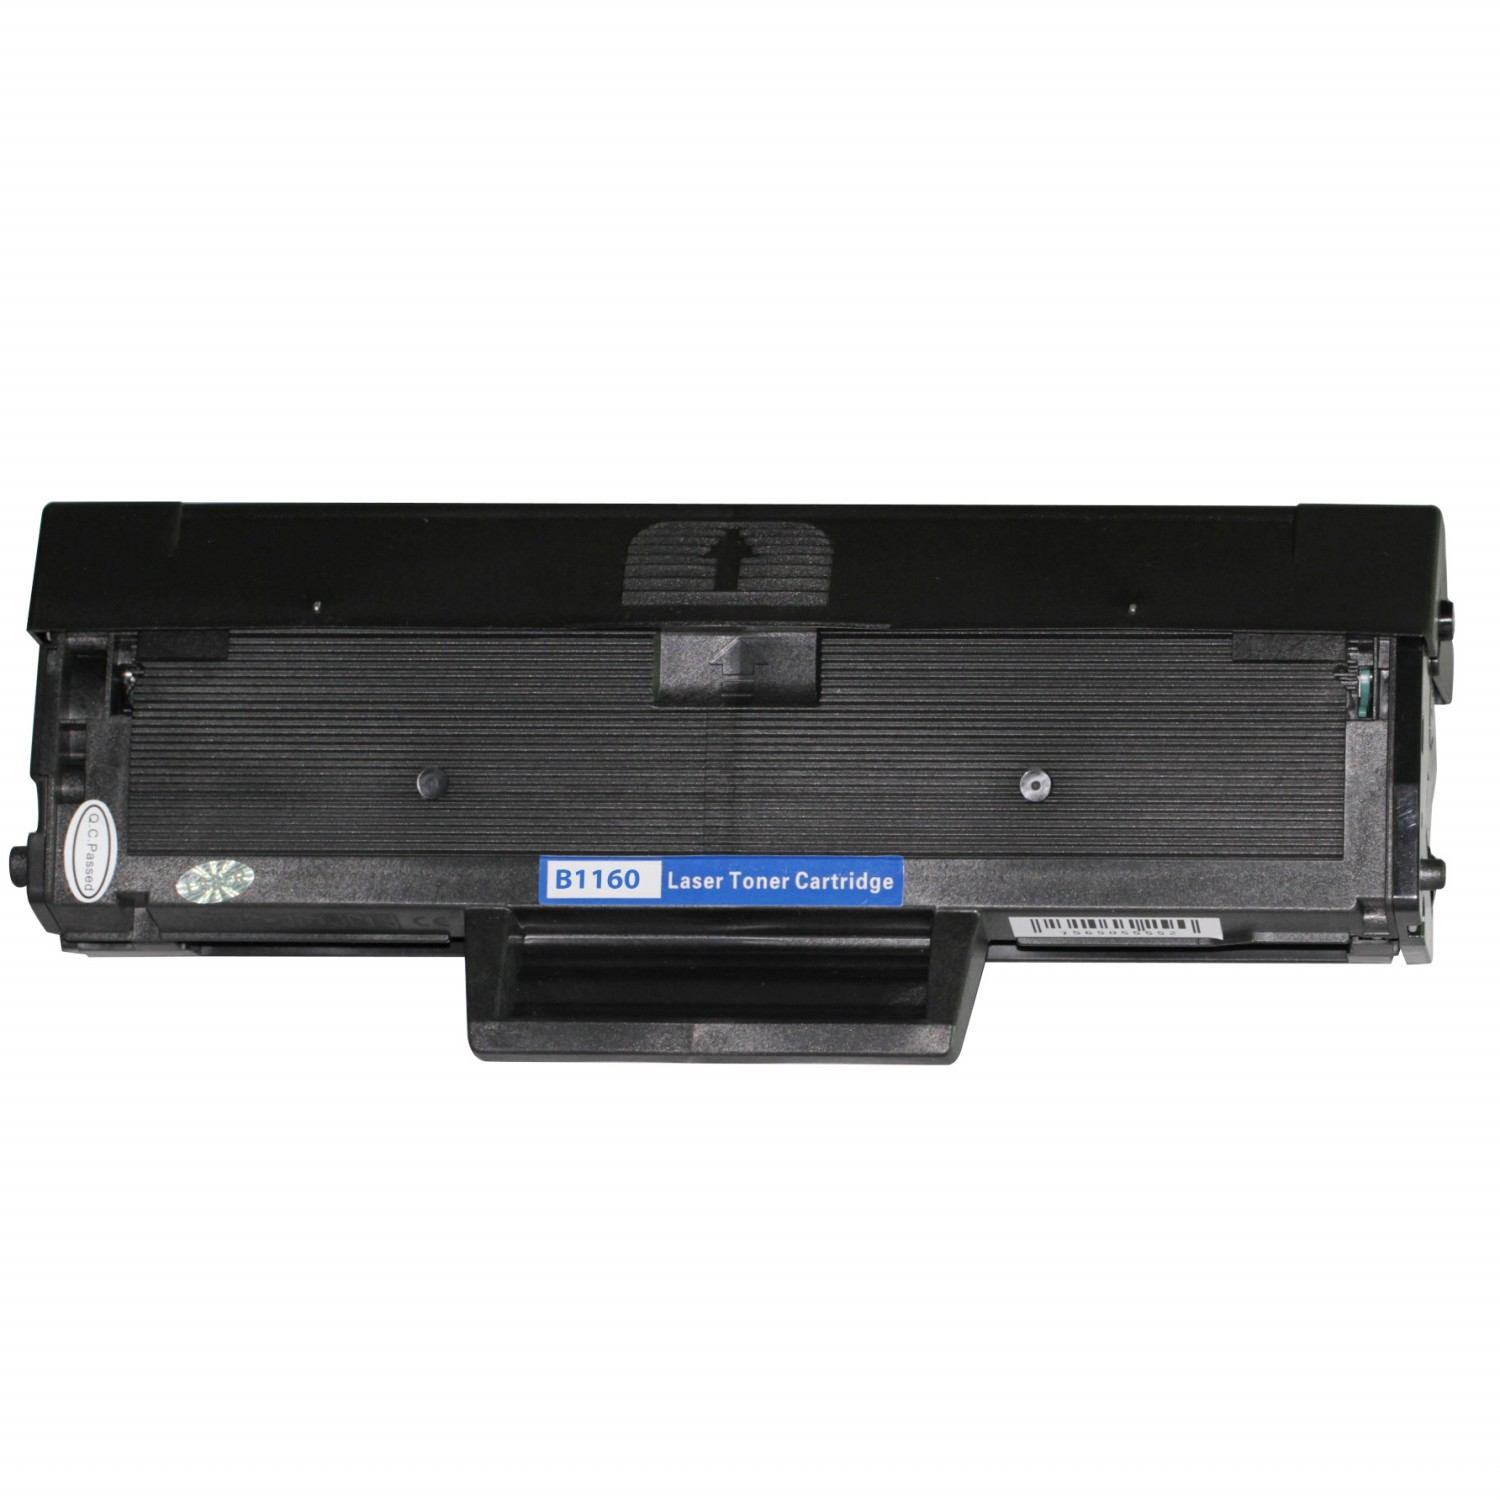 Image of   Dell B1160 (593-11108) Lasertoner,sort.Kompatibel,1500 sider